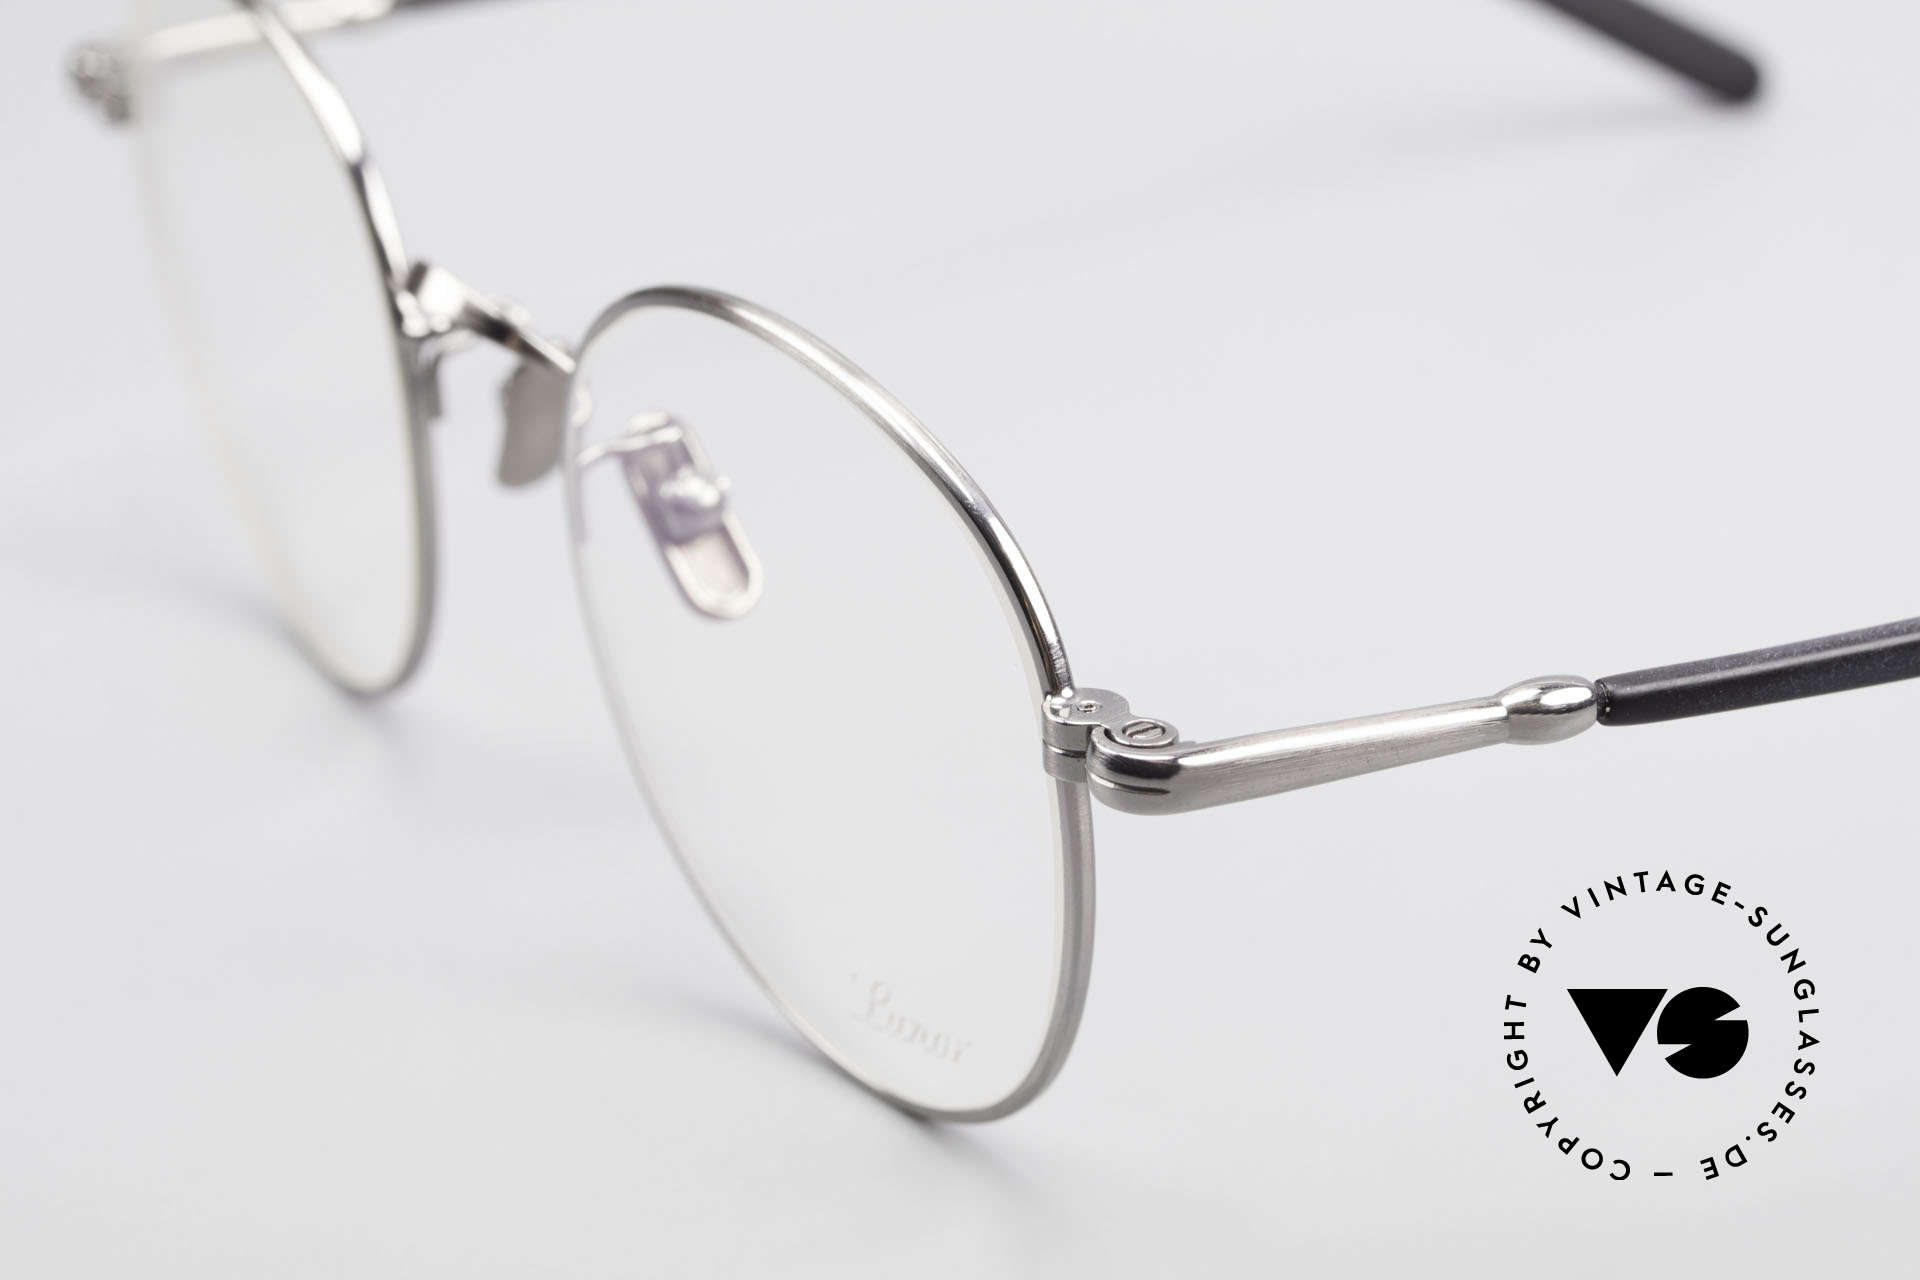 Lunor VA 111 Classy Panto Eyeglasses 2015, from the 2015's collection, but in a well-known quality, Made for Men